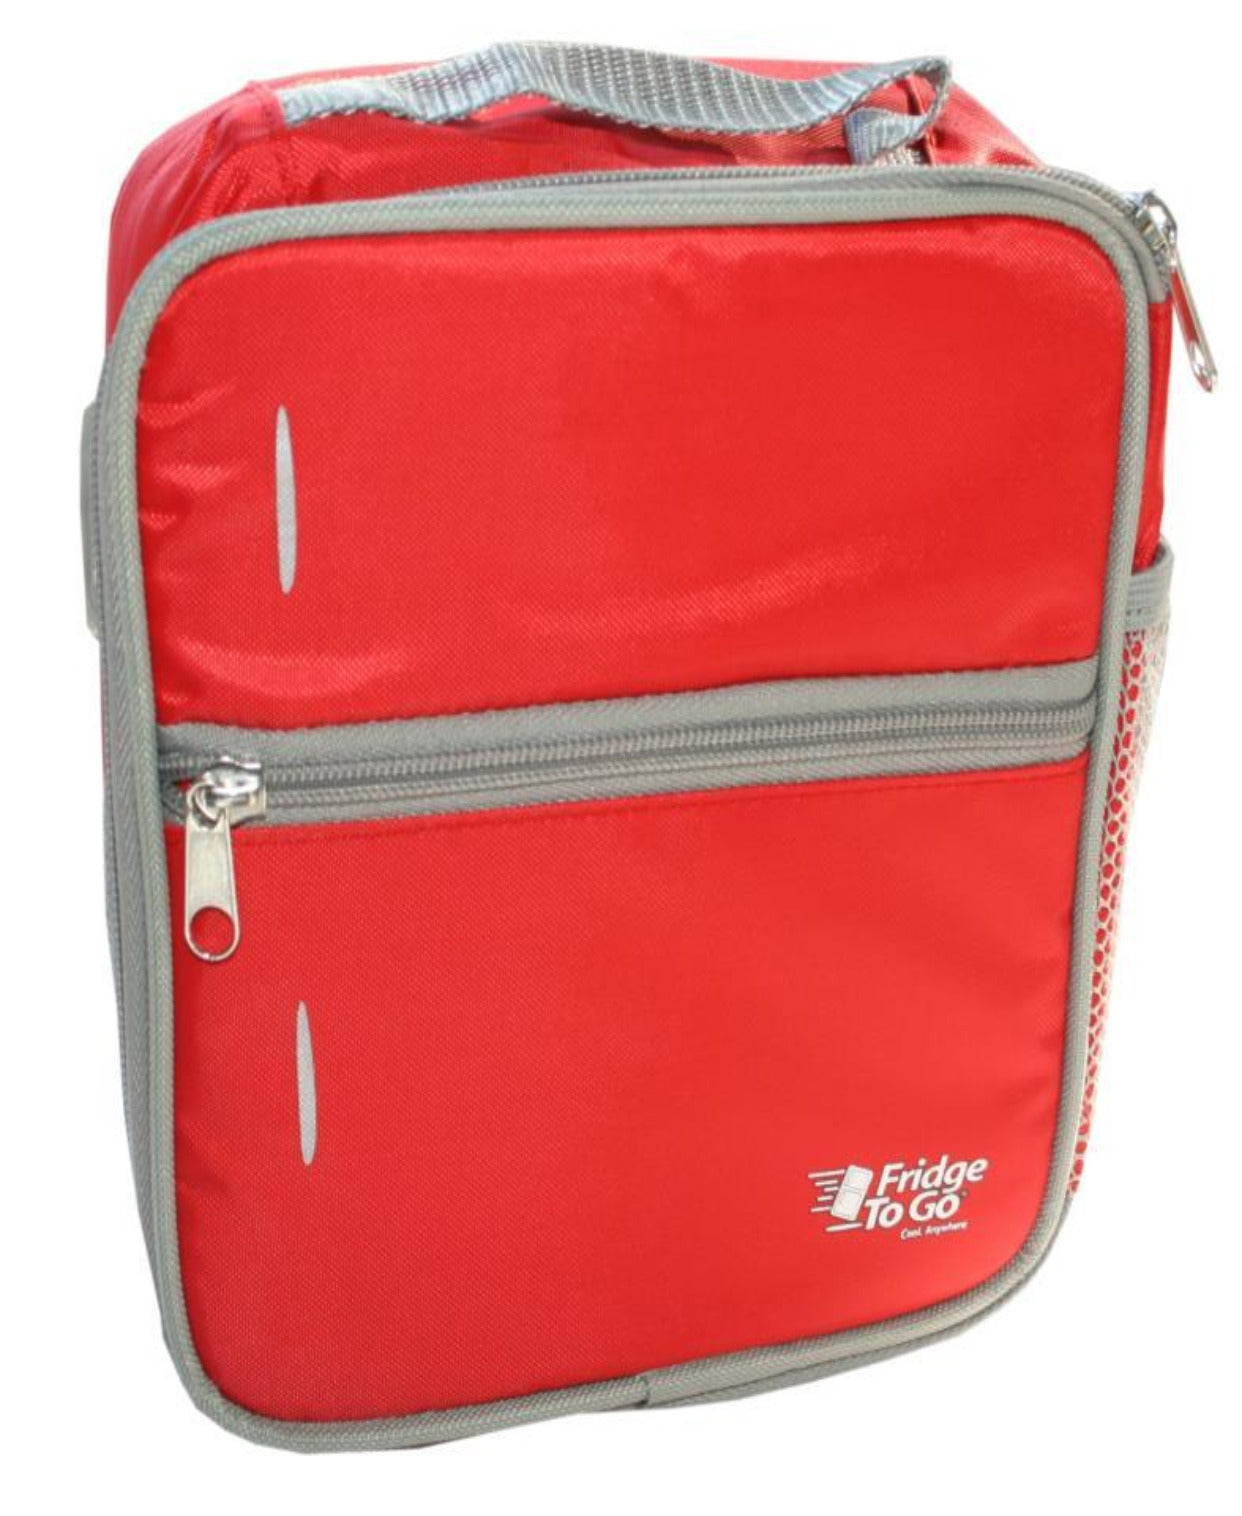 Fridge to Go Lunch Cooler Red